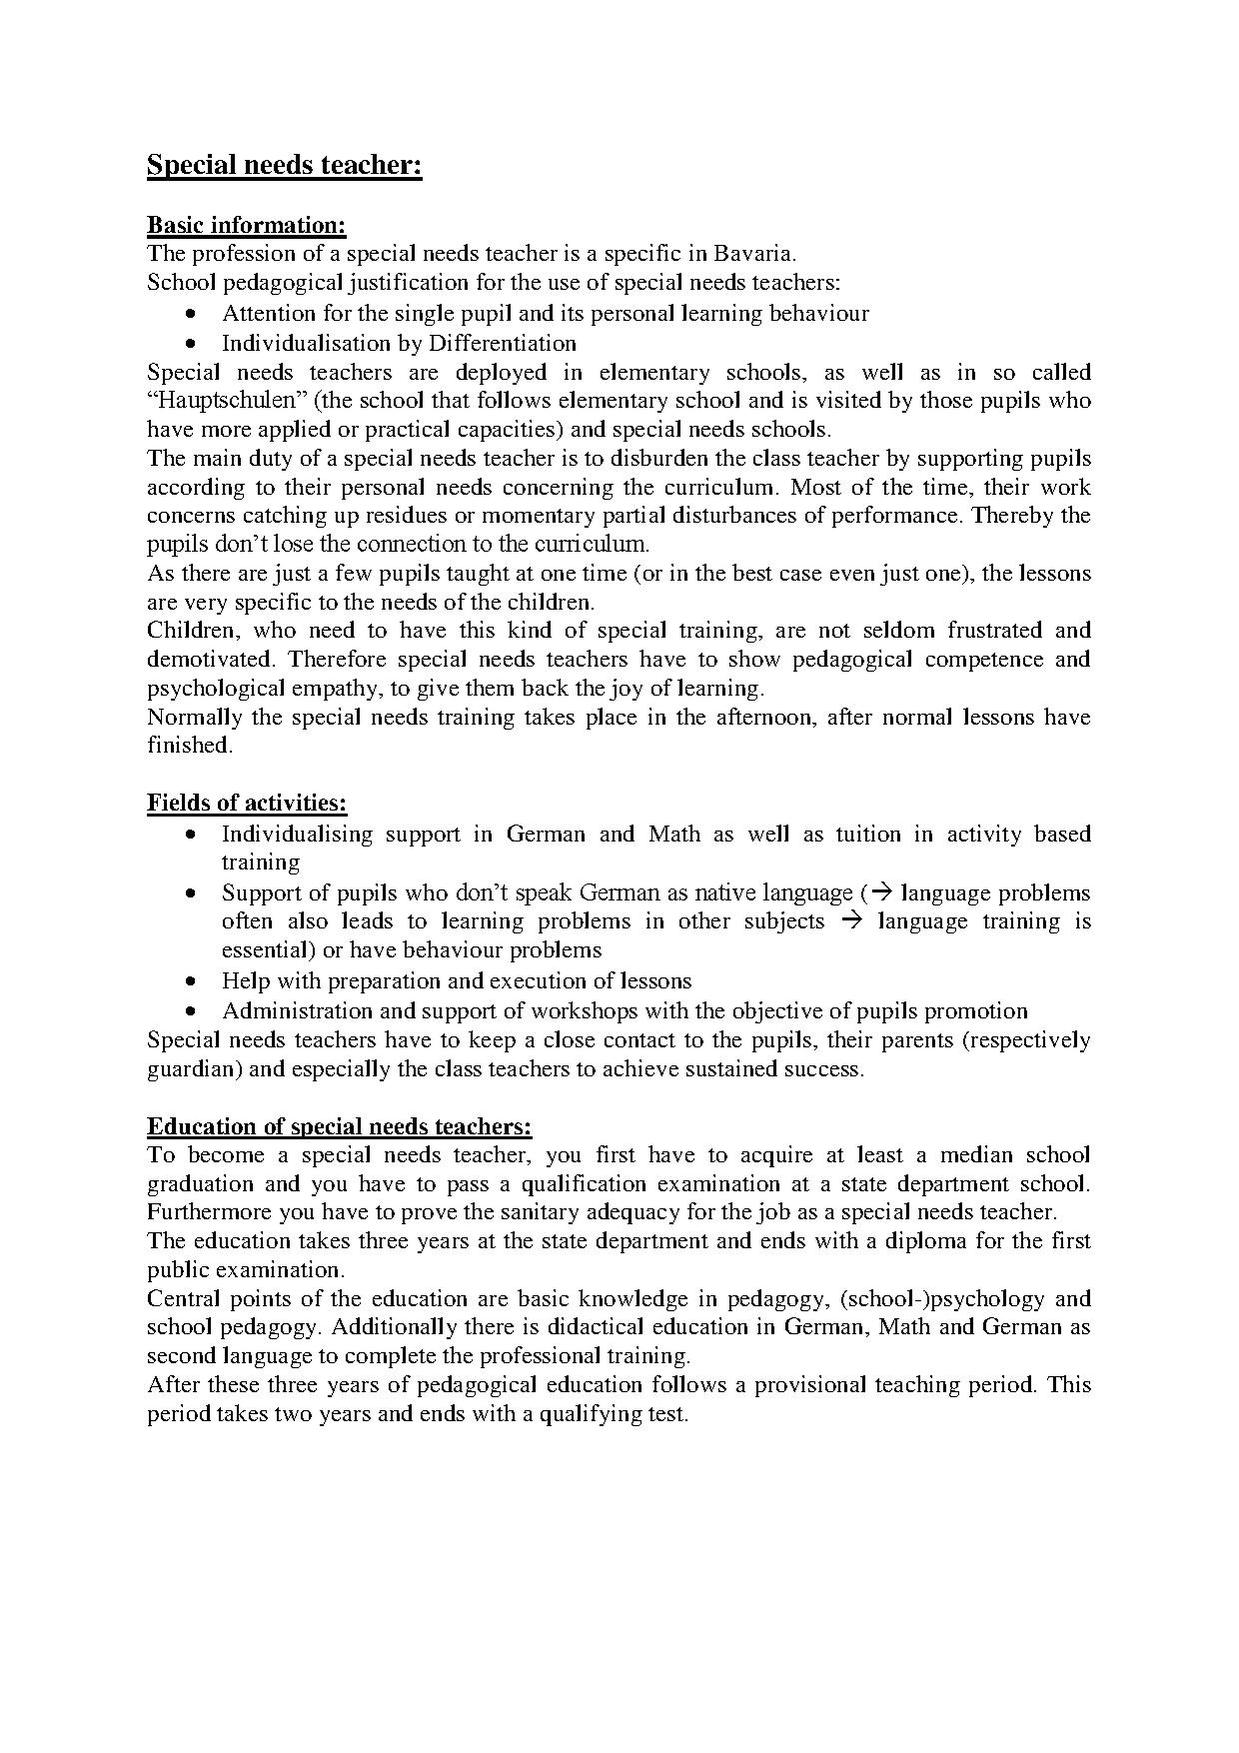 Teacher for special needs.pdf